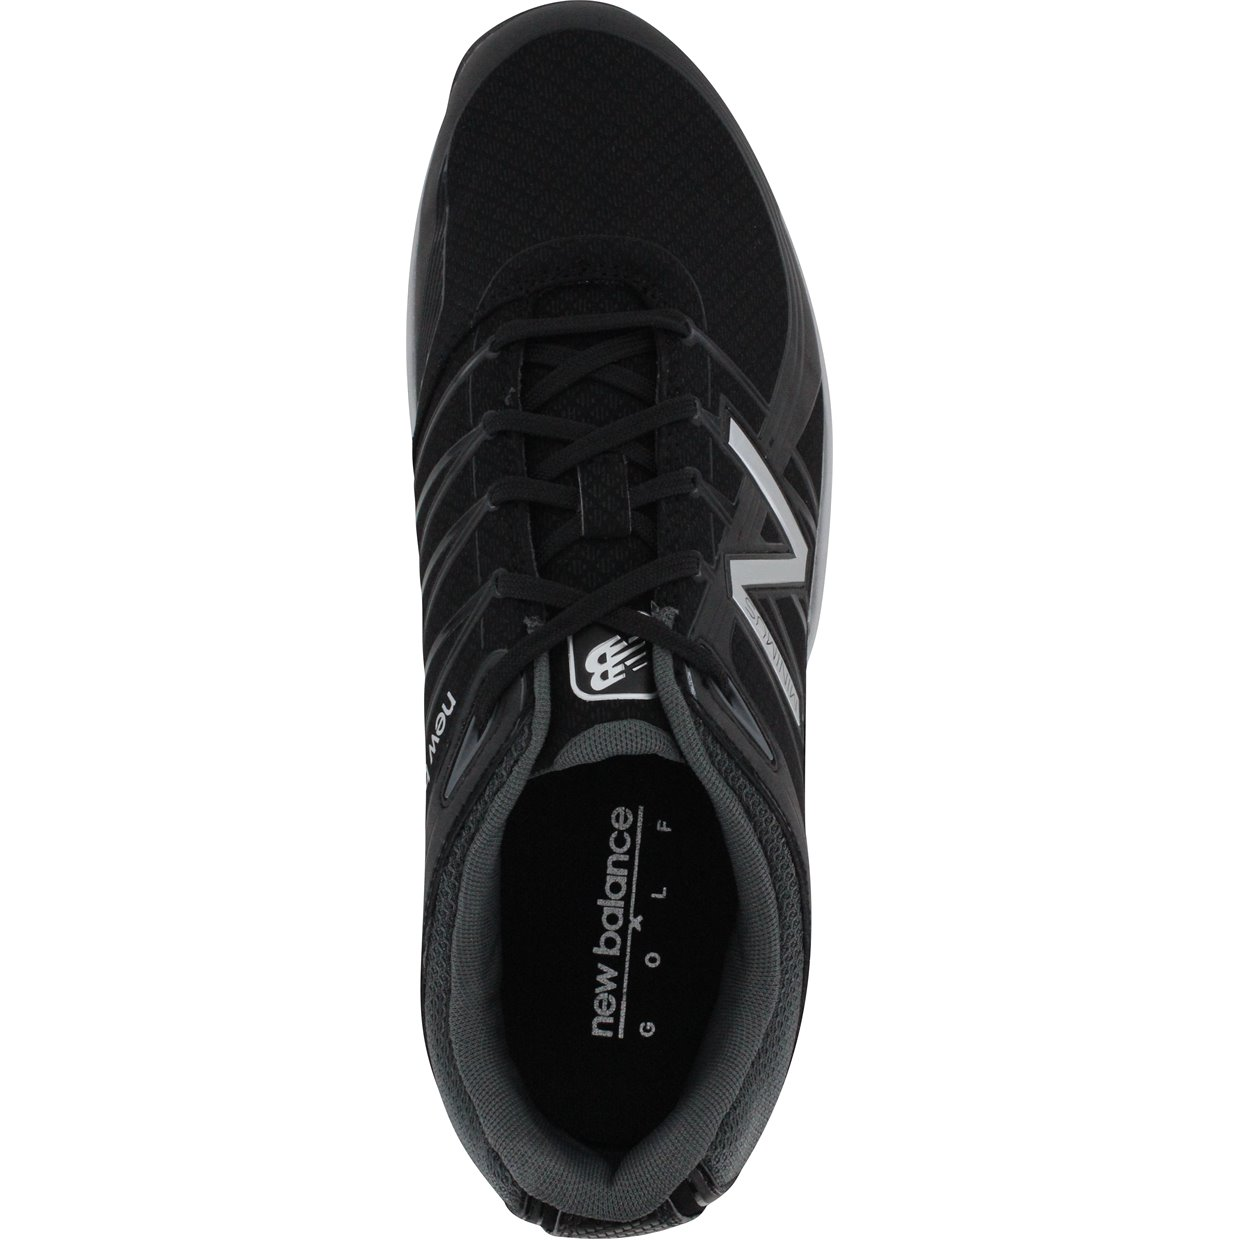 1d3d70c268057 New Balance Minimus 1005 Spikeless Shoes · Alternate Product Image of Right  Shoe Side Angle Alternate Product Image of Top View ...